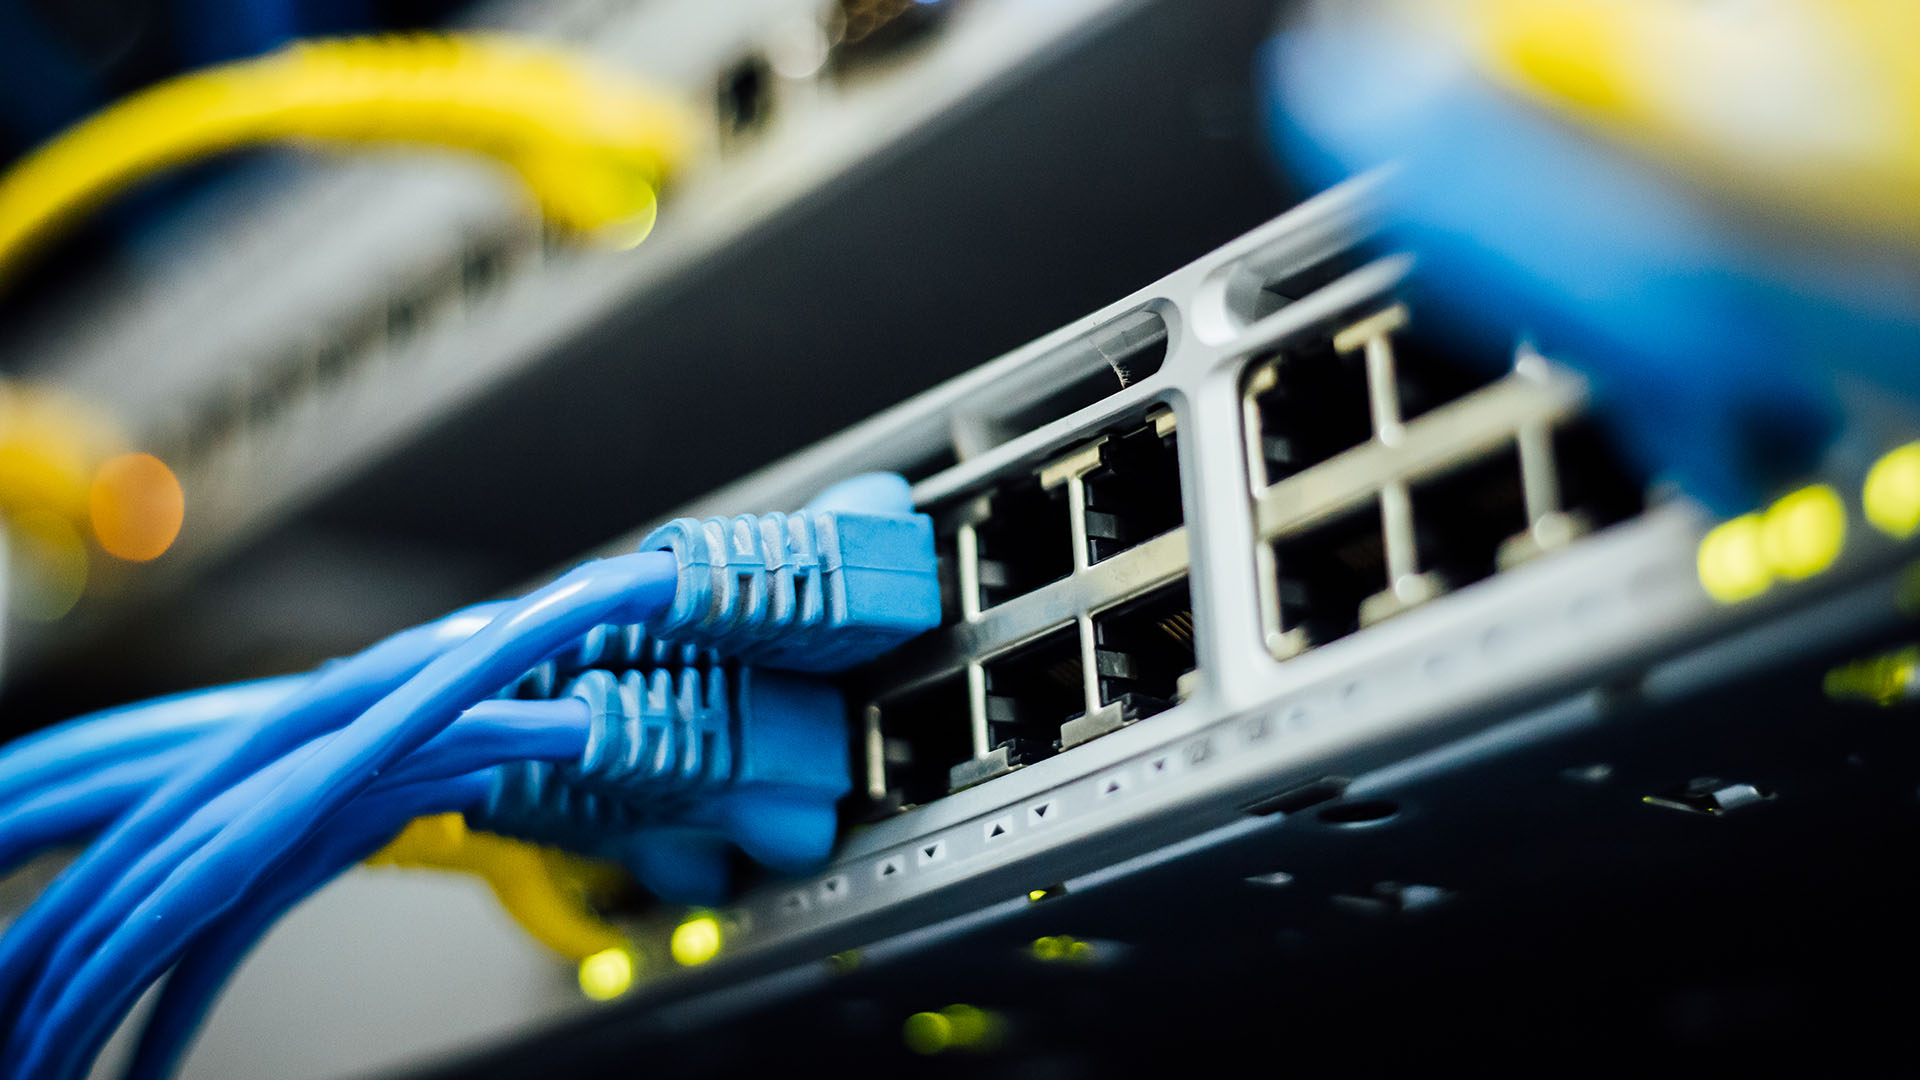 Network Switches As-a-Service - Speros - Savannah, GA